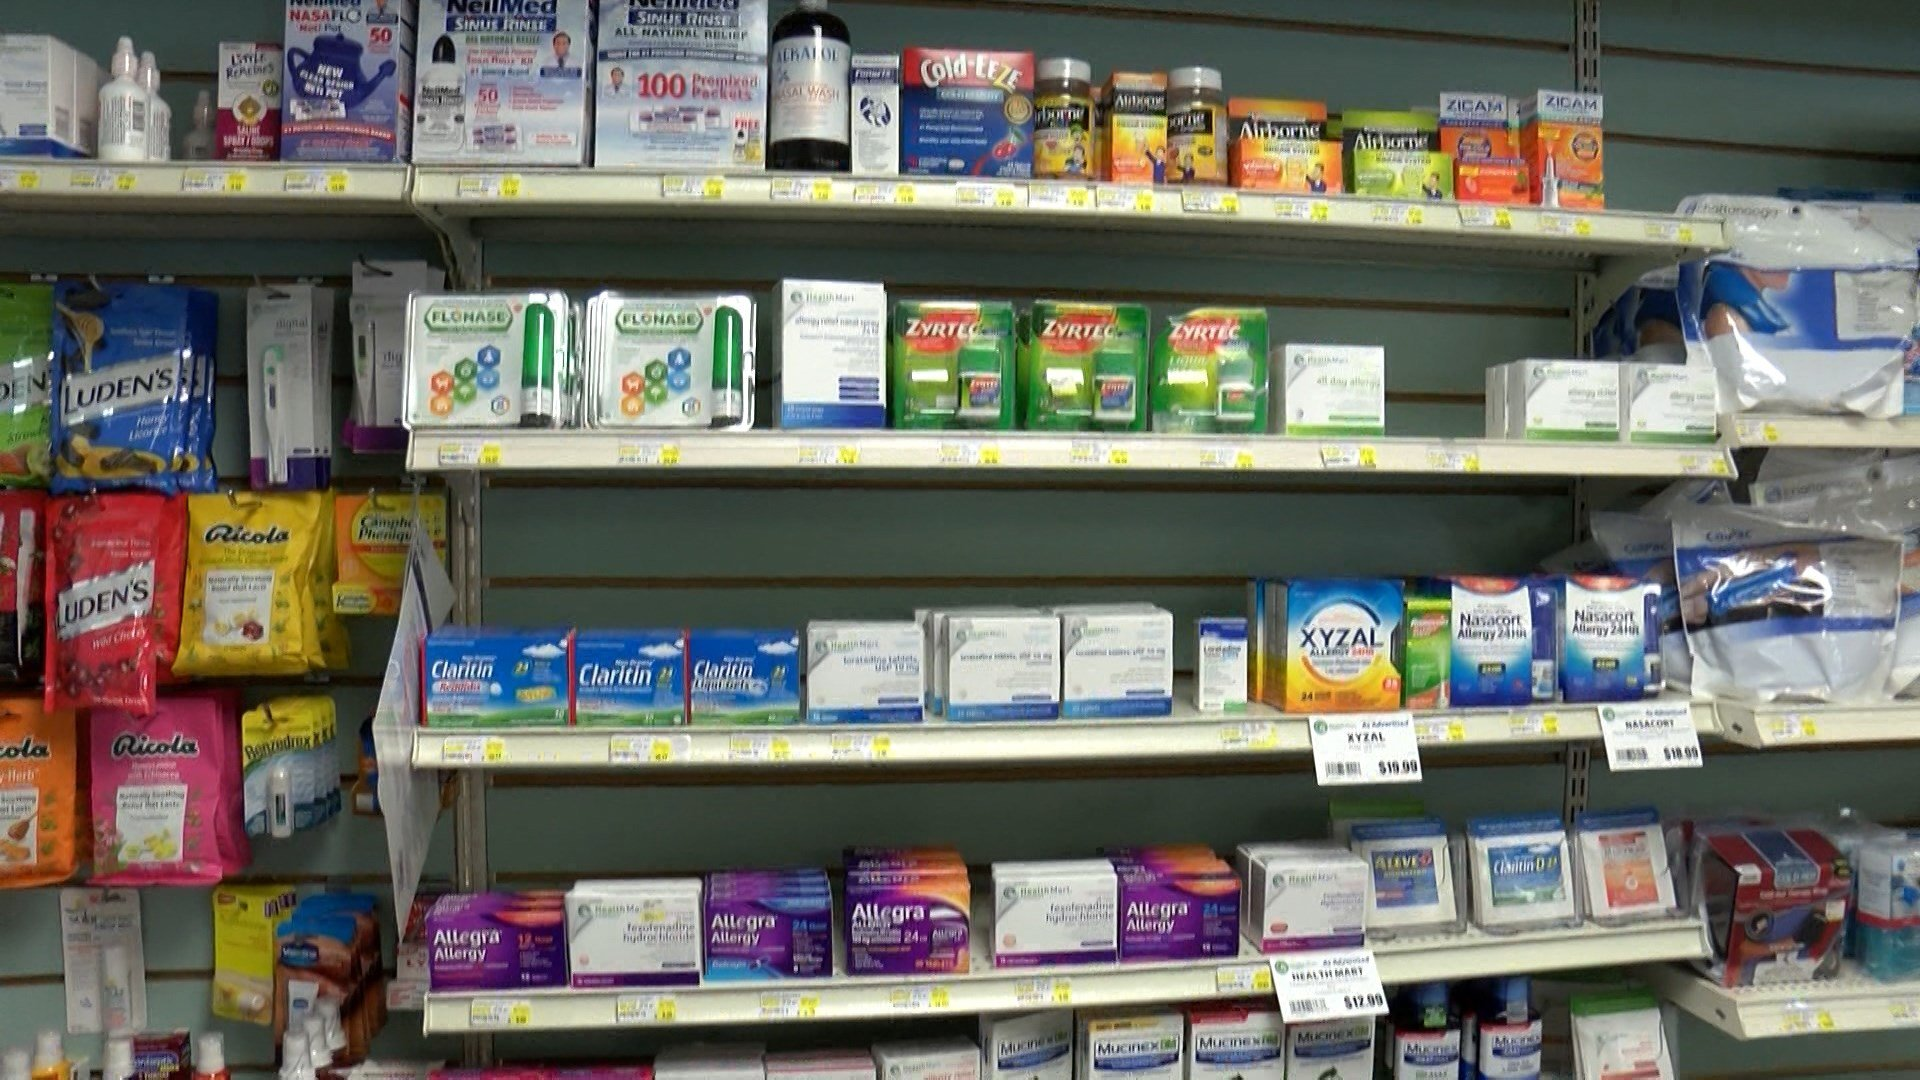 Pharmacists say over the counter allergy medications are flying off the shelves this allergy season. (KSBY photo)